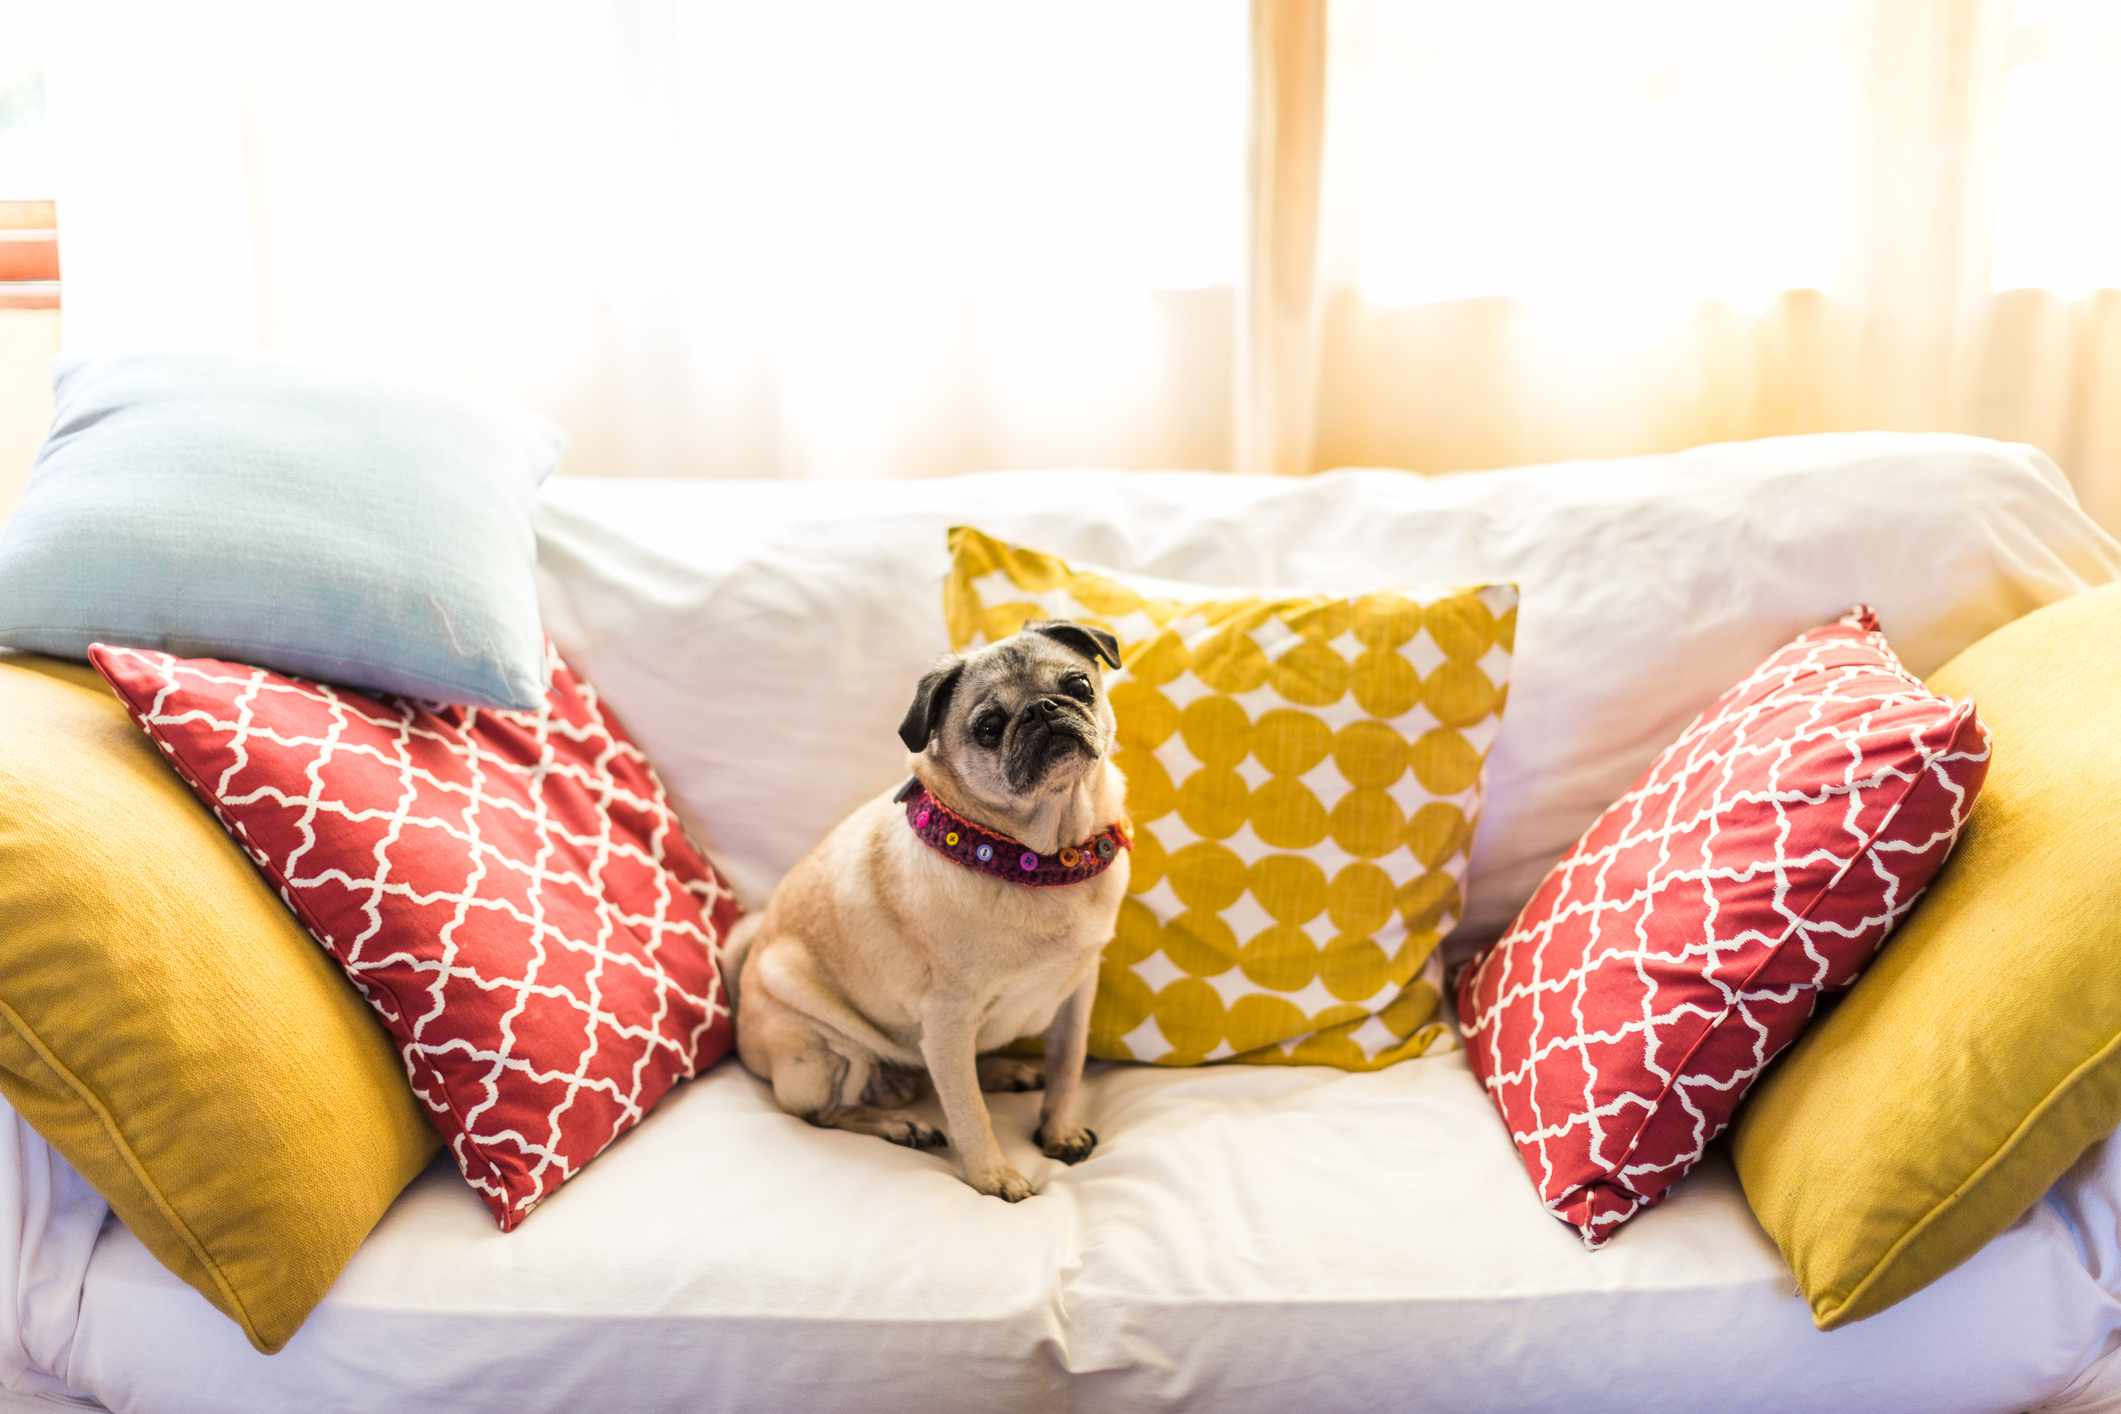 A pug sitting on a couch with red and yellow pillows.